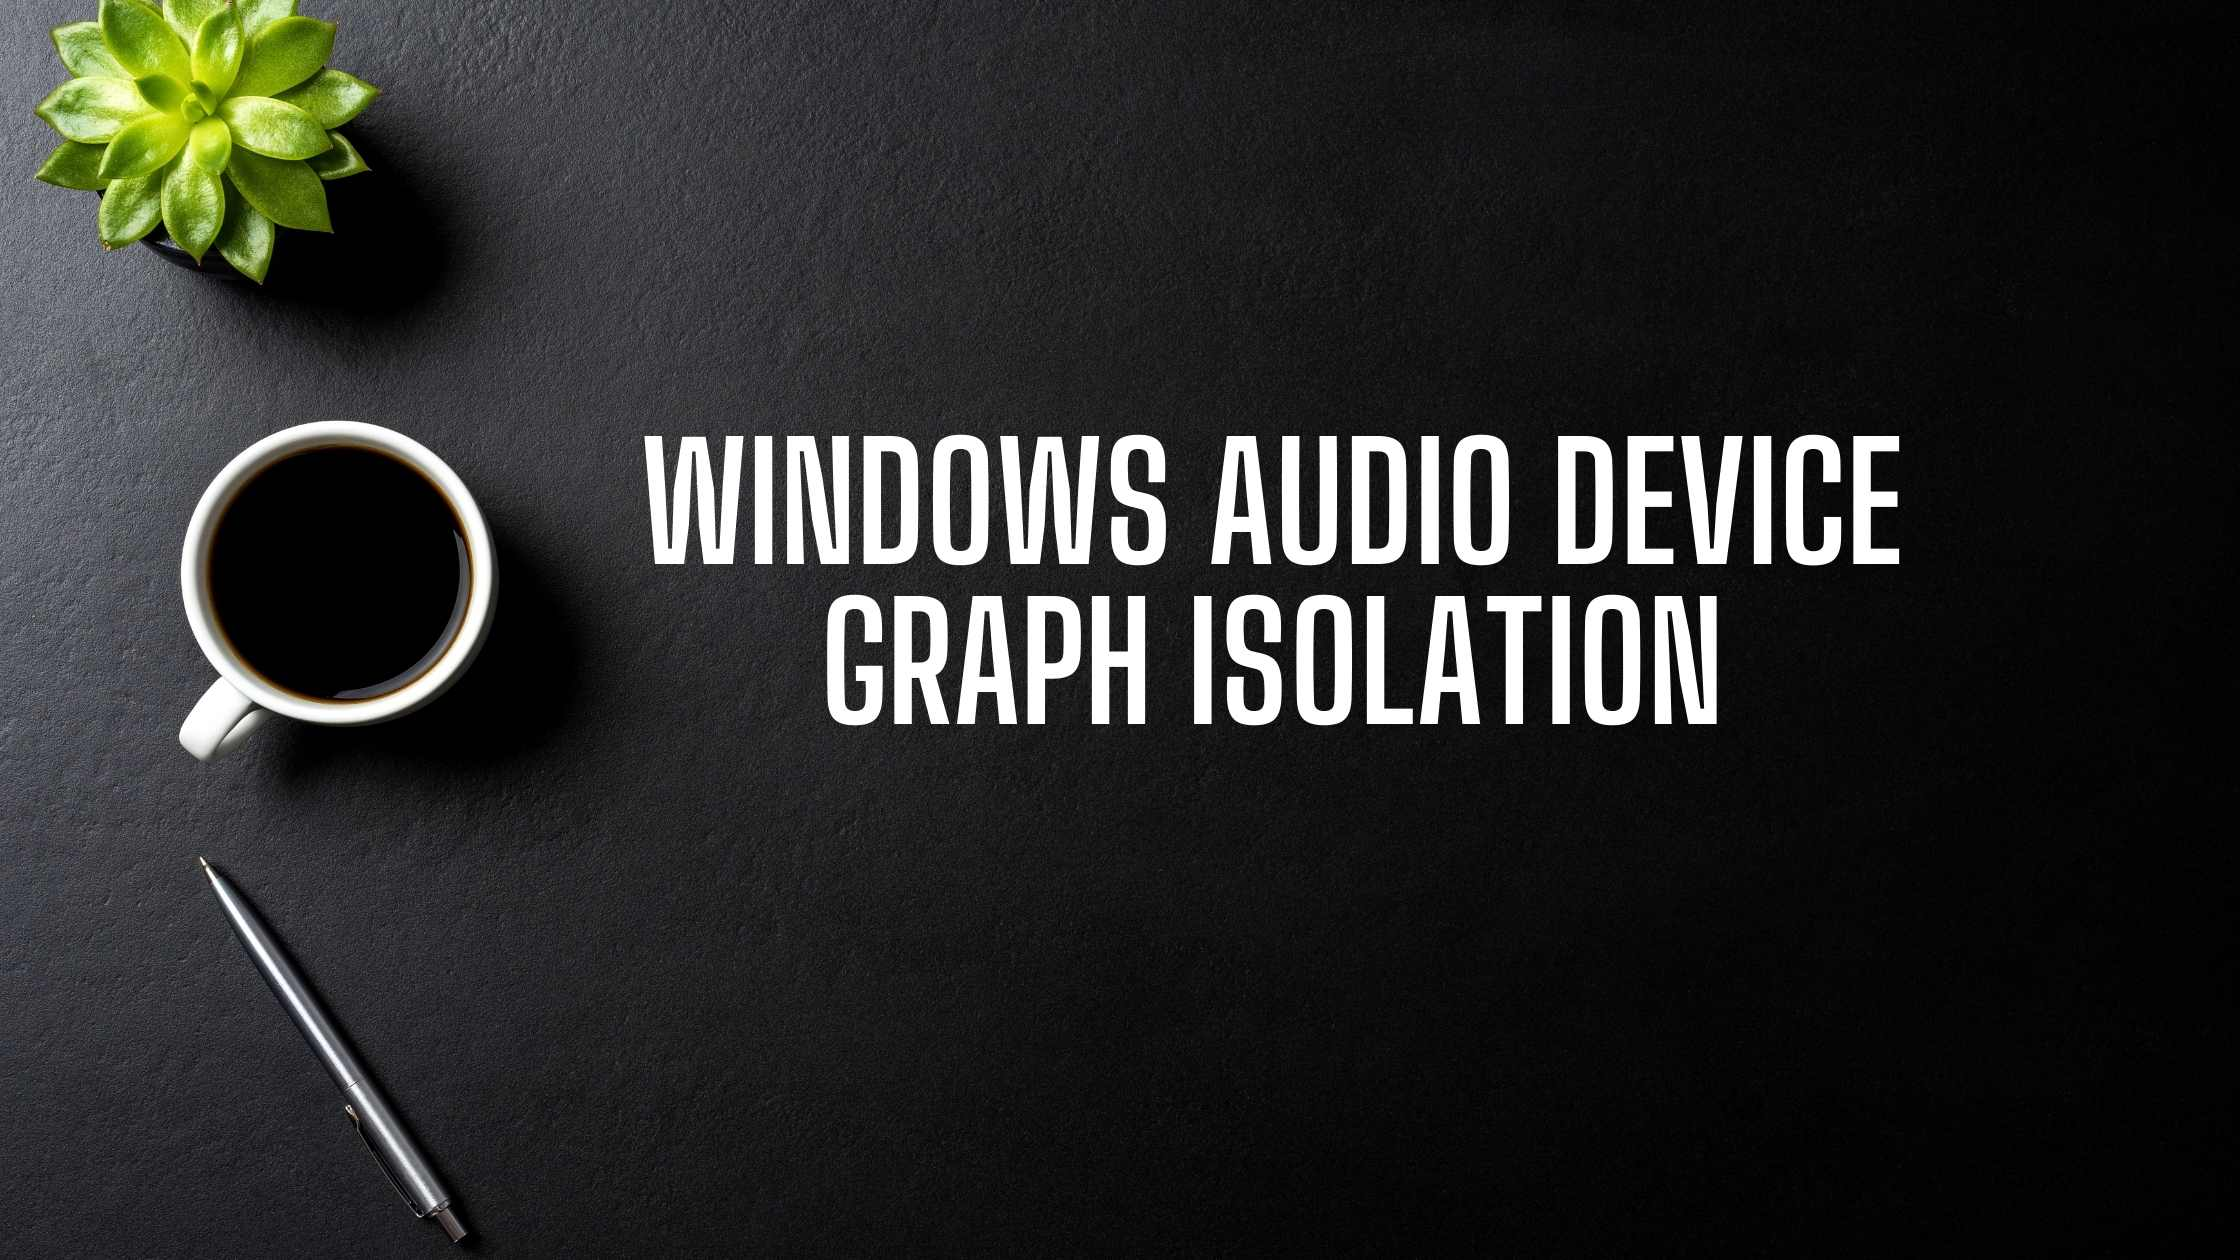 Fix Windows Audio Device Graph Isolation High CPU Usage Issue